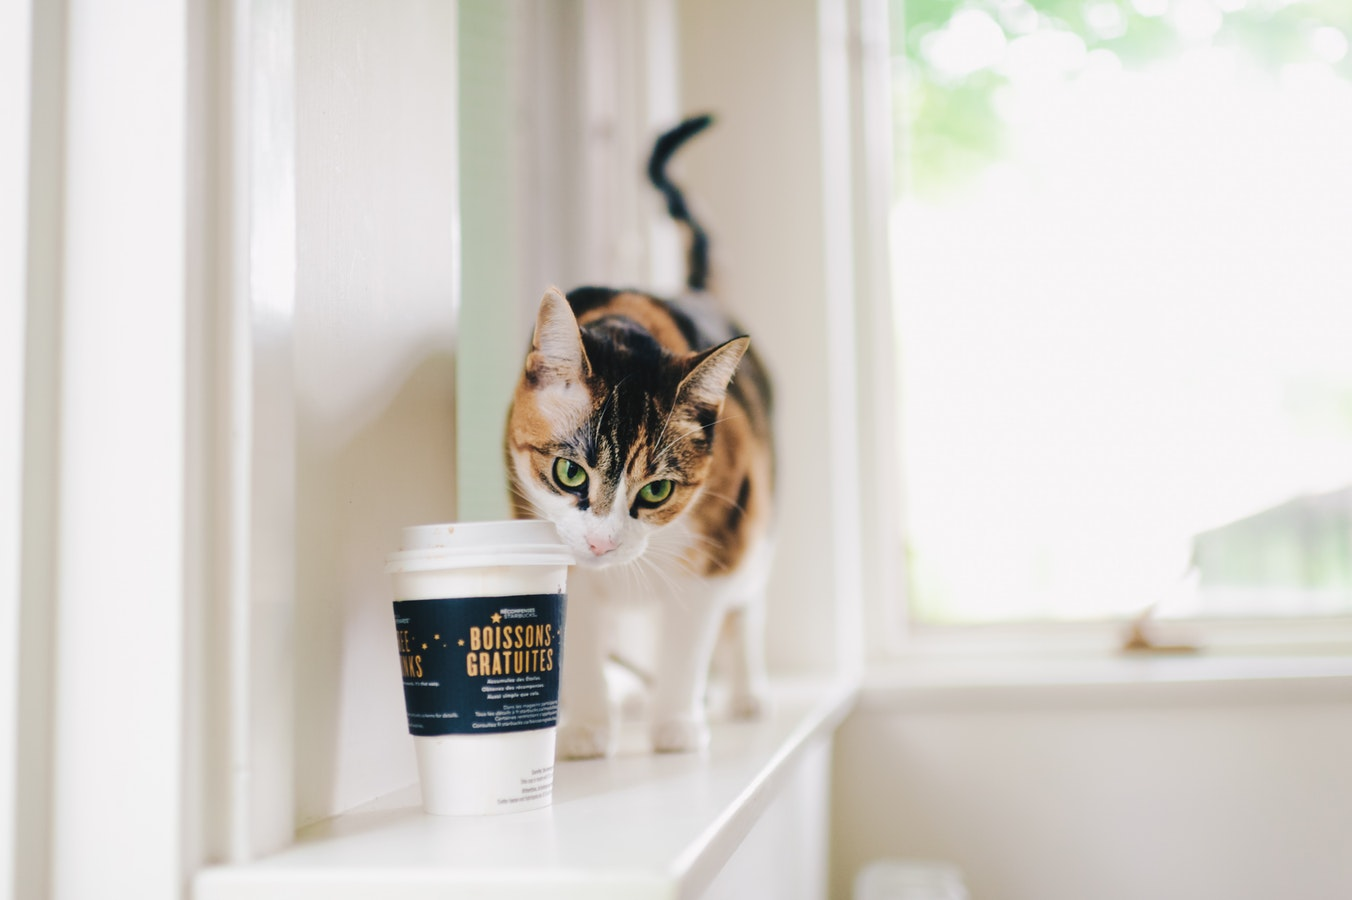 """Cat Café - Let's be honest, at Catfe Diem we're more about the cats than the cafe. Our """"catmosphere"""" provides a comfortable, home-like environment for our cats to be themselves and just be cats, giving them a better chance for adoption. All while offering self-serve coffee for humans with purchase of admission."""